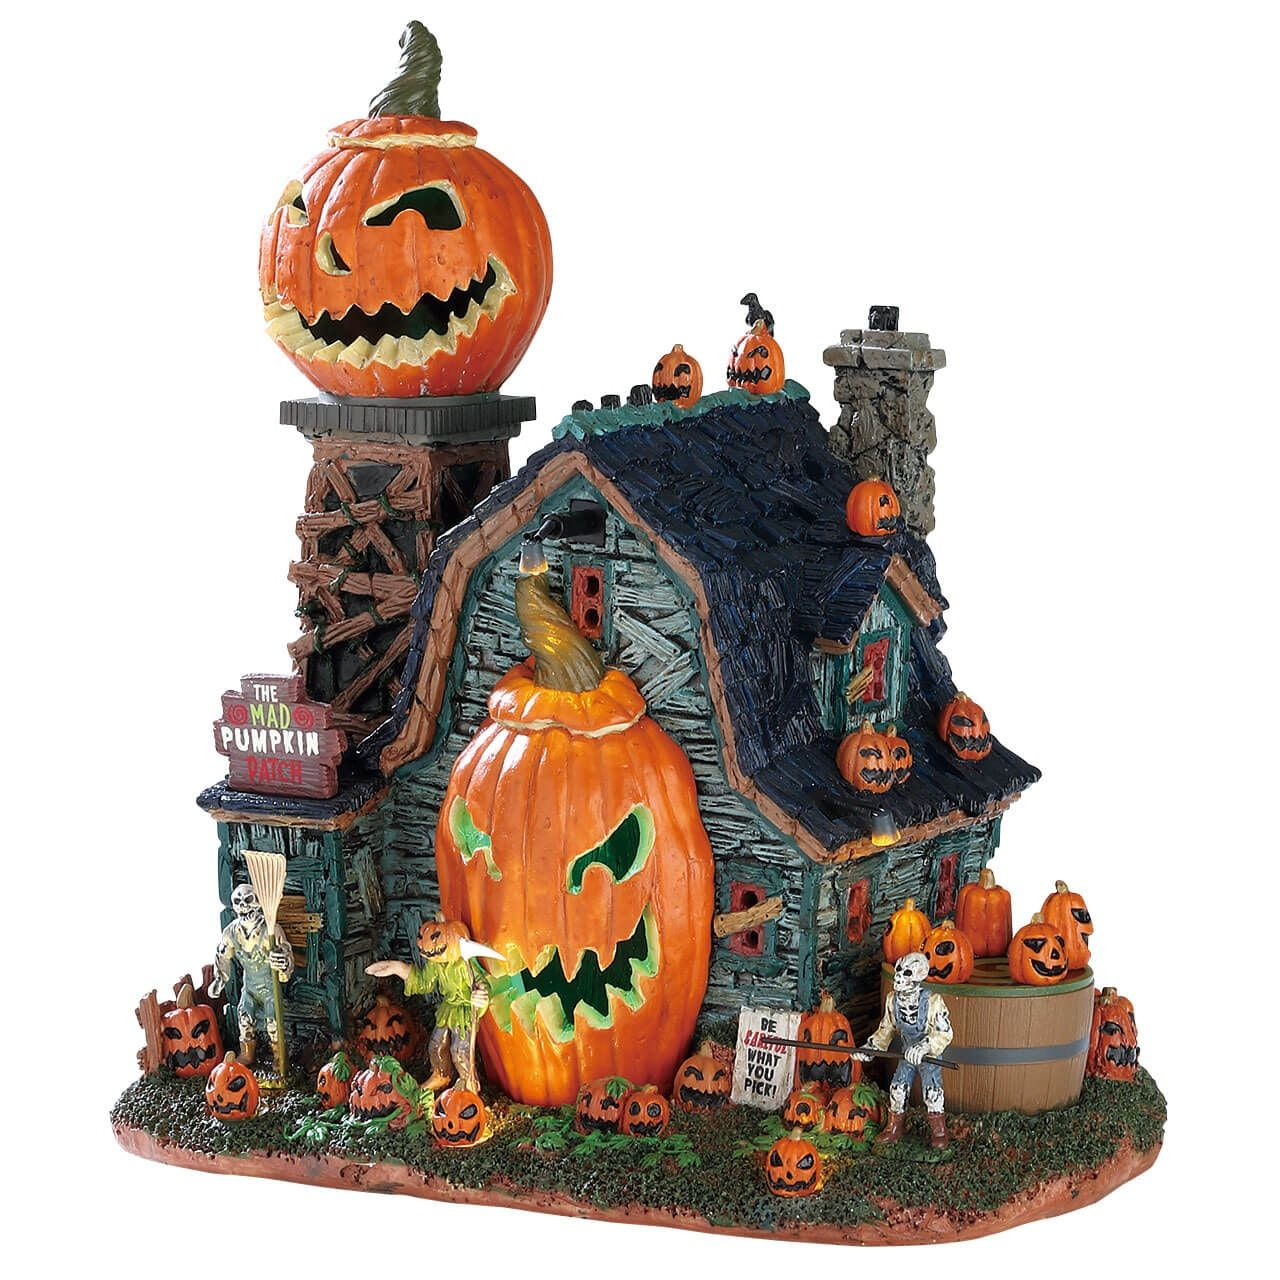 The Mad Pumpkin Patch Lemax spooky town, Spooky town